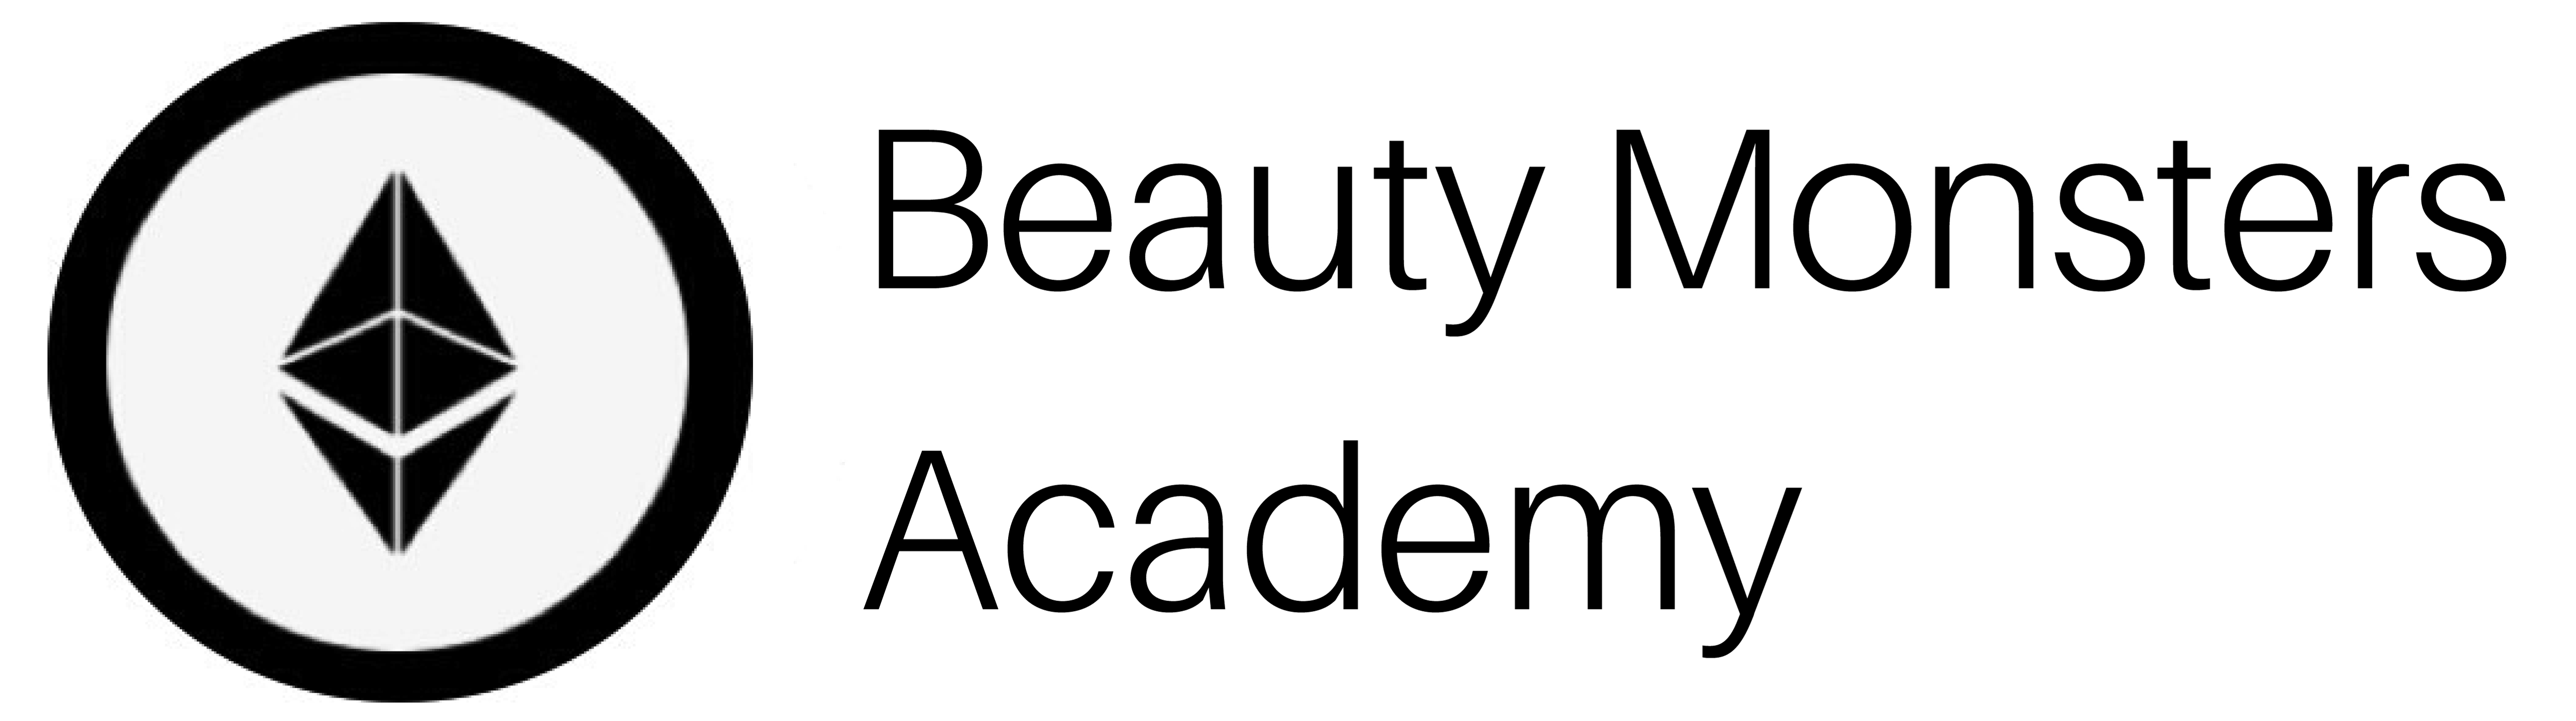 BeautyMonsters -